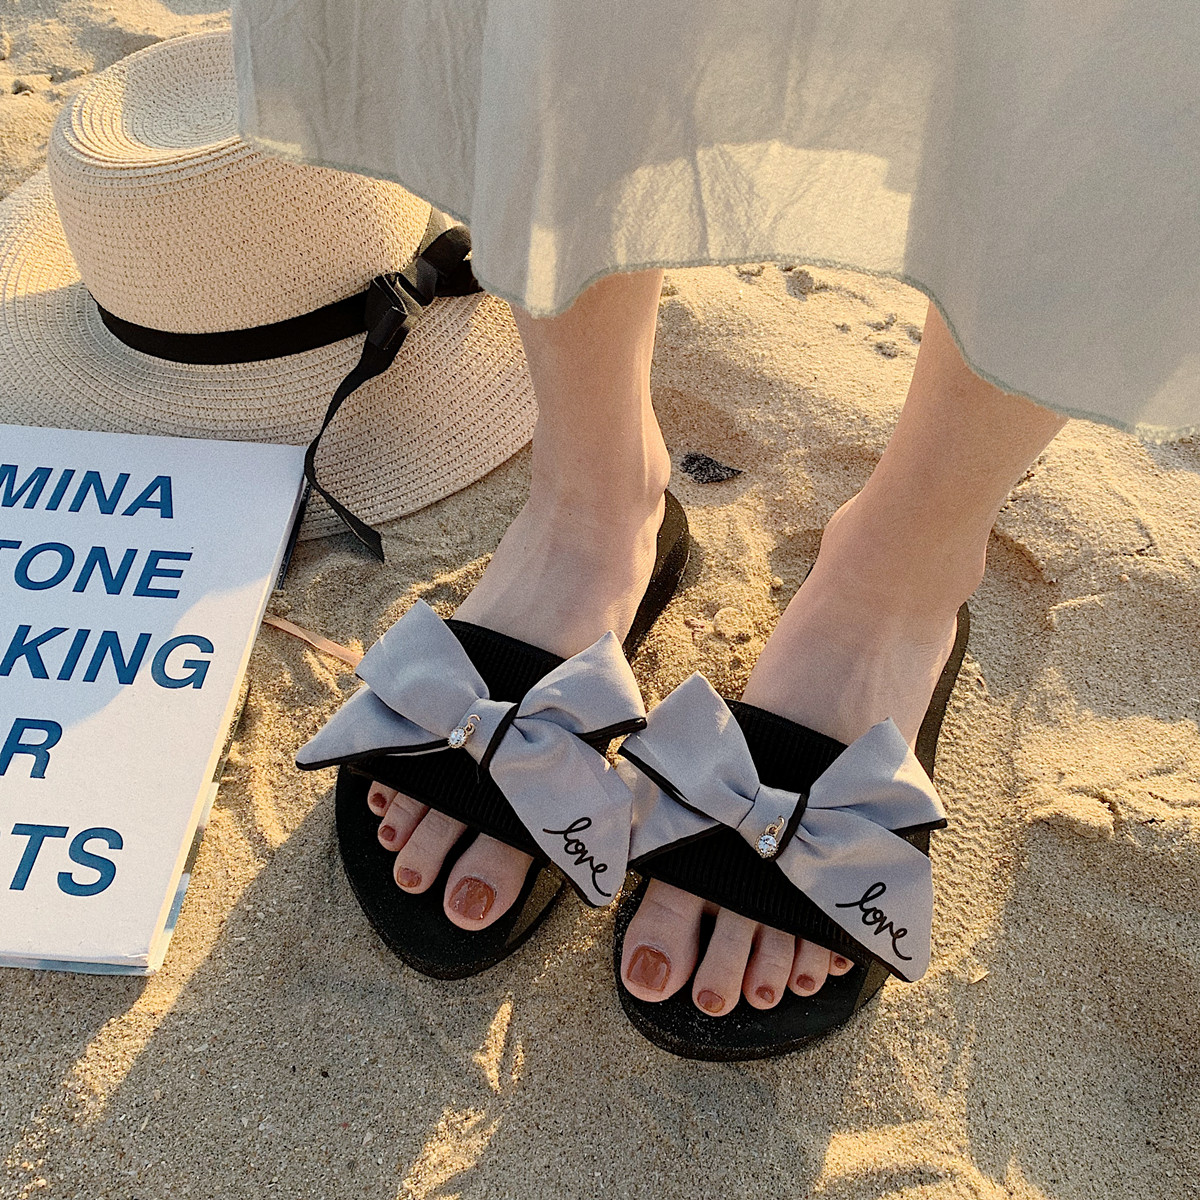 Thin Strips Slippers Female Summer Korean Fashion Wear Sweet Bow Beach Shoes Seaside Tourism Vacation Slip Www Buychinatoyou Com Buy China Shop At Wholesale Price By Online English Taobao Agent